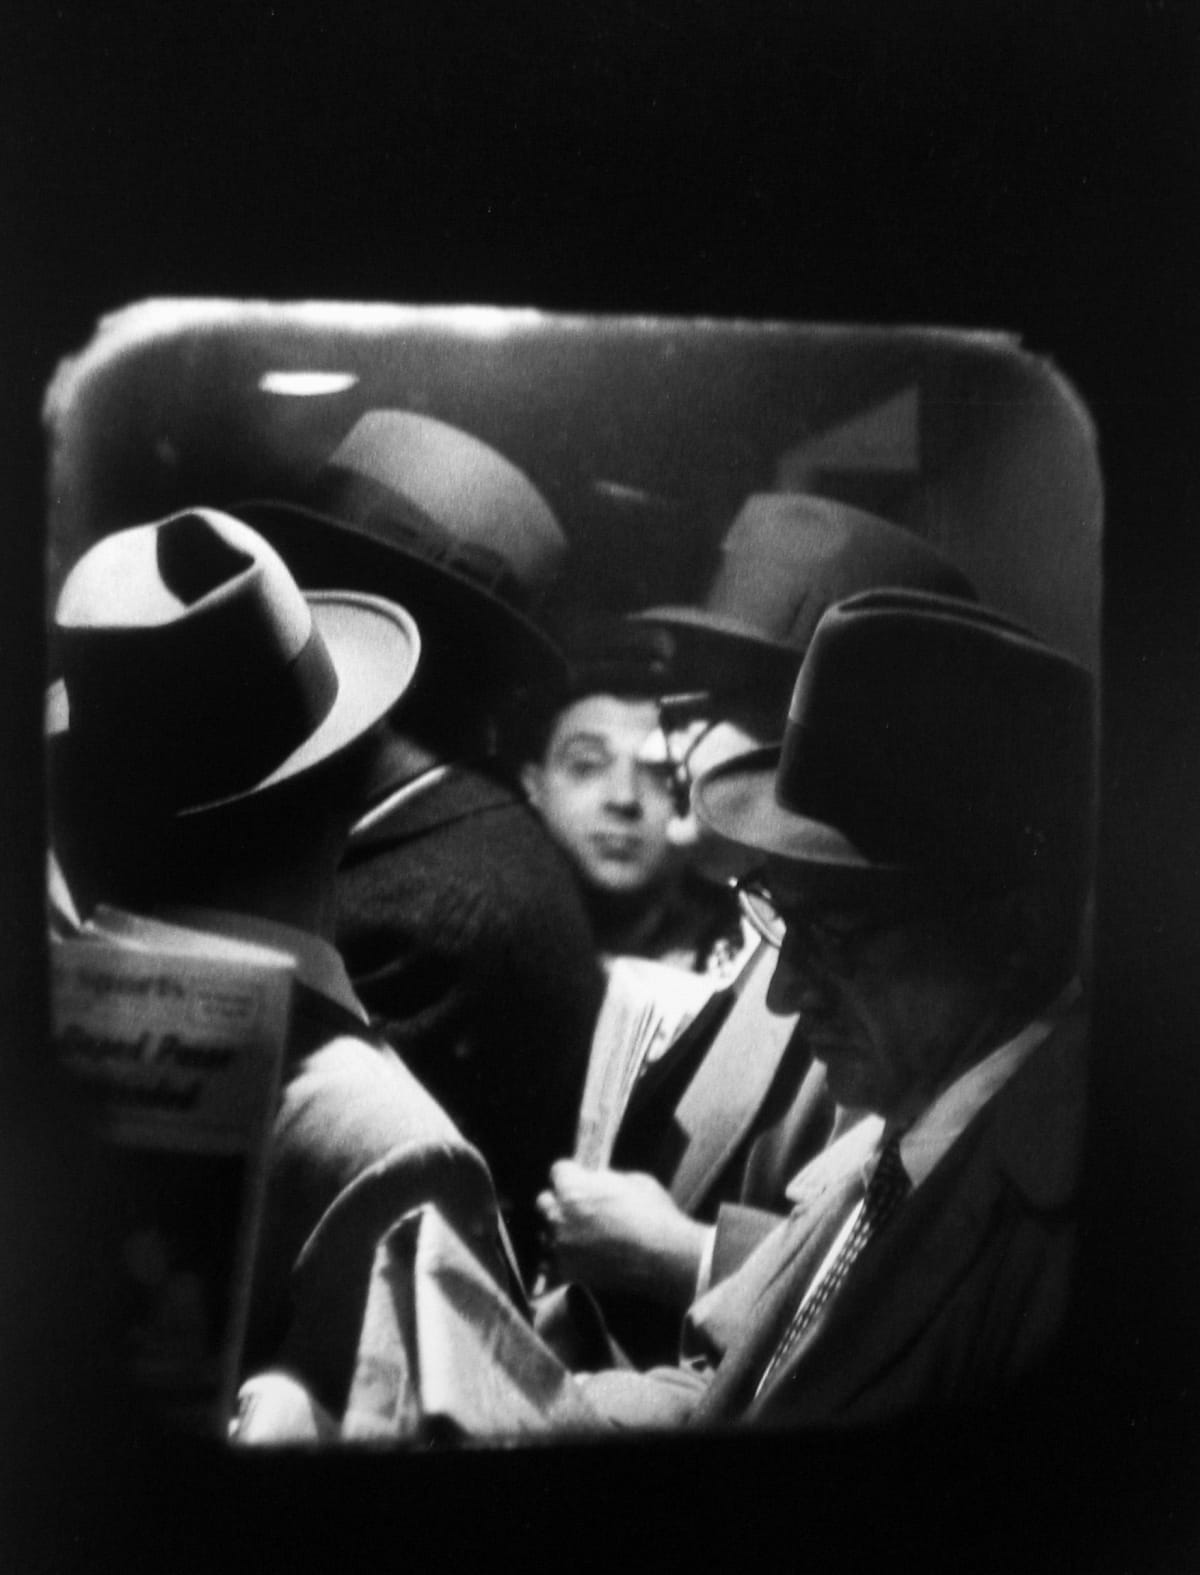 Louis Stettner Odd Man In, 1958 Gelatin silver print 14 x 11 inches